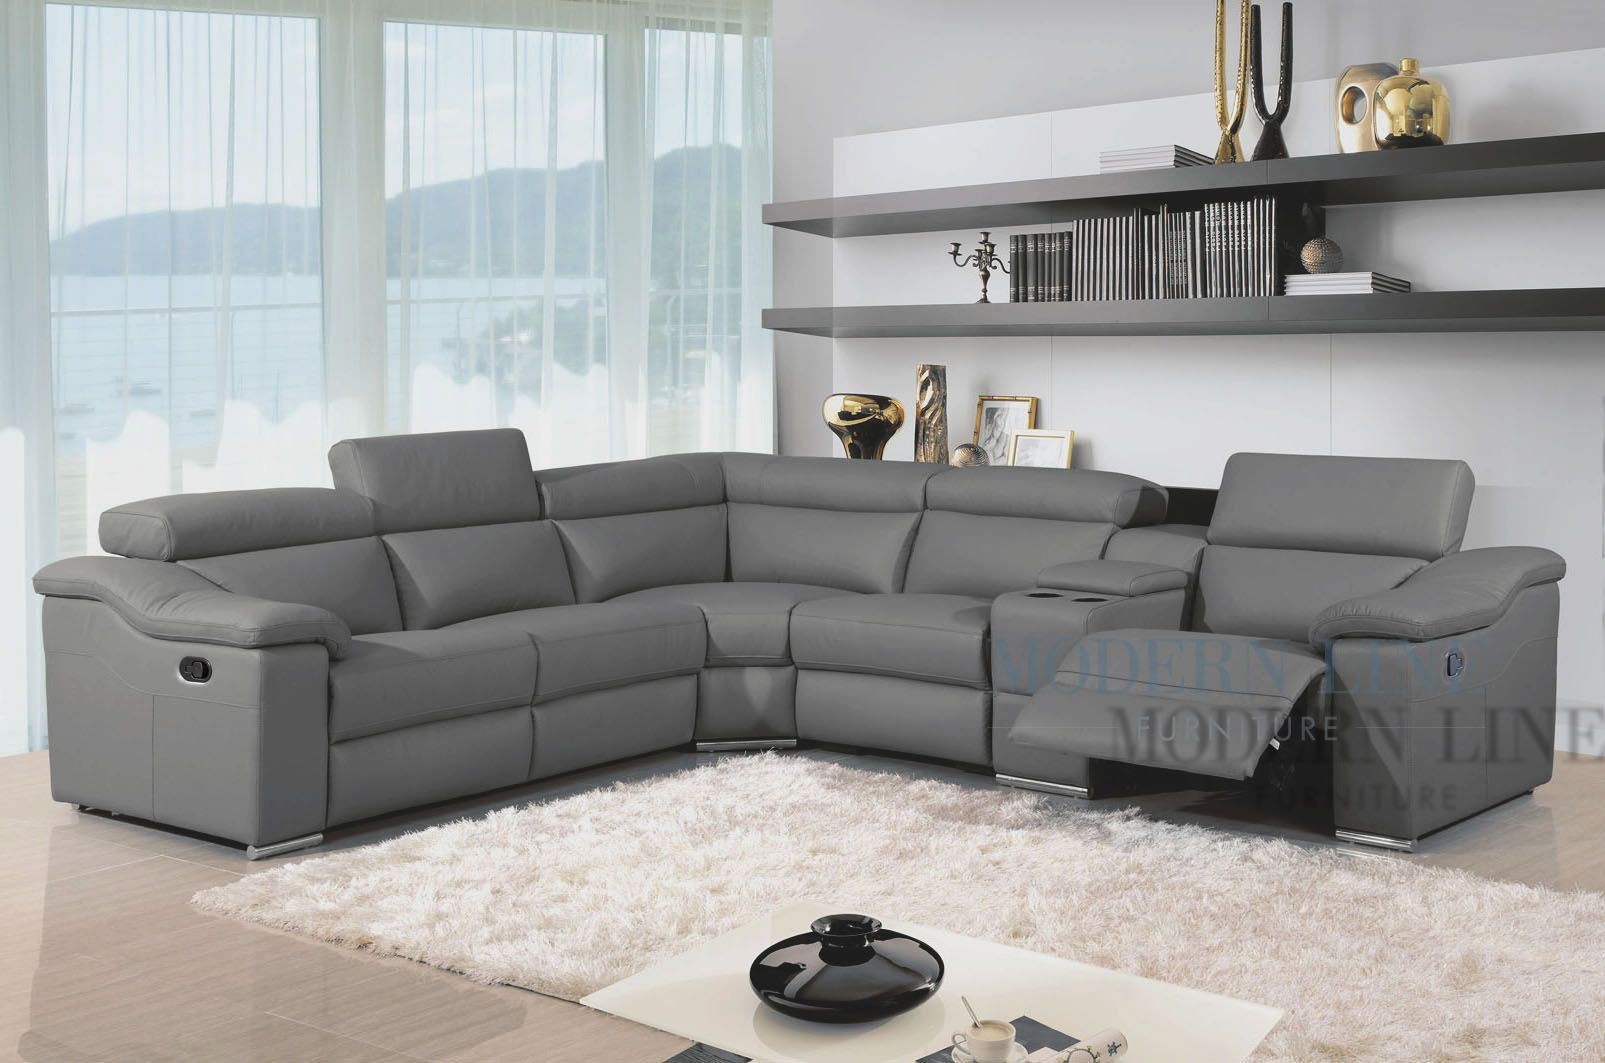 Awesome great charcoal grey sectional sofa 29 about remodel home design ideas with charcoal grey sectional sofa modern leather reclining